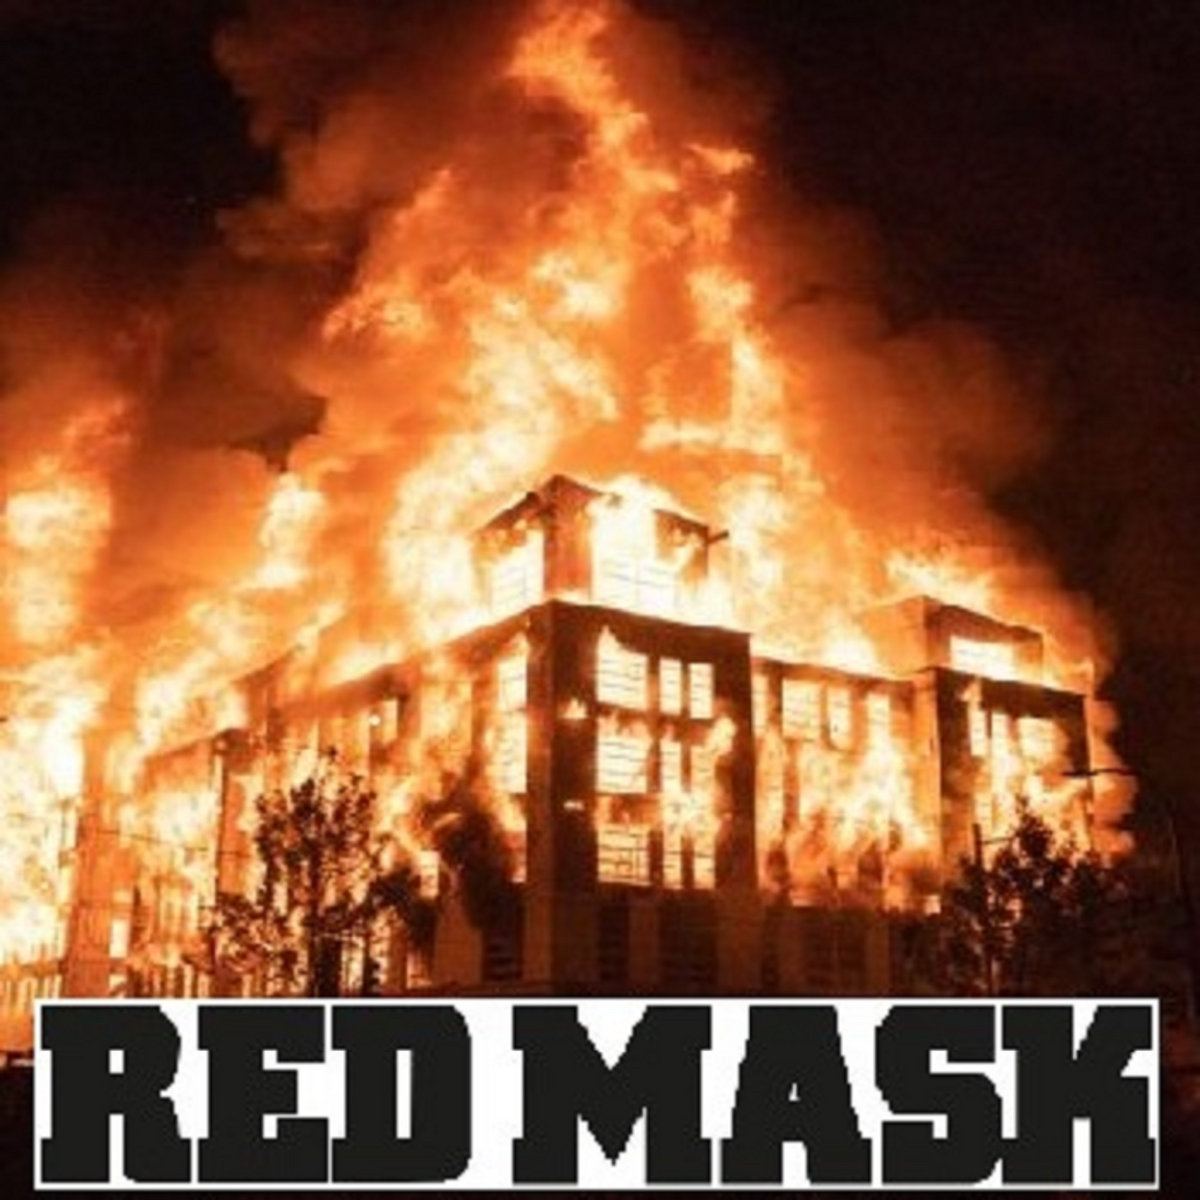 Red Mask and 'The Only Way'